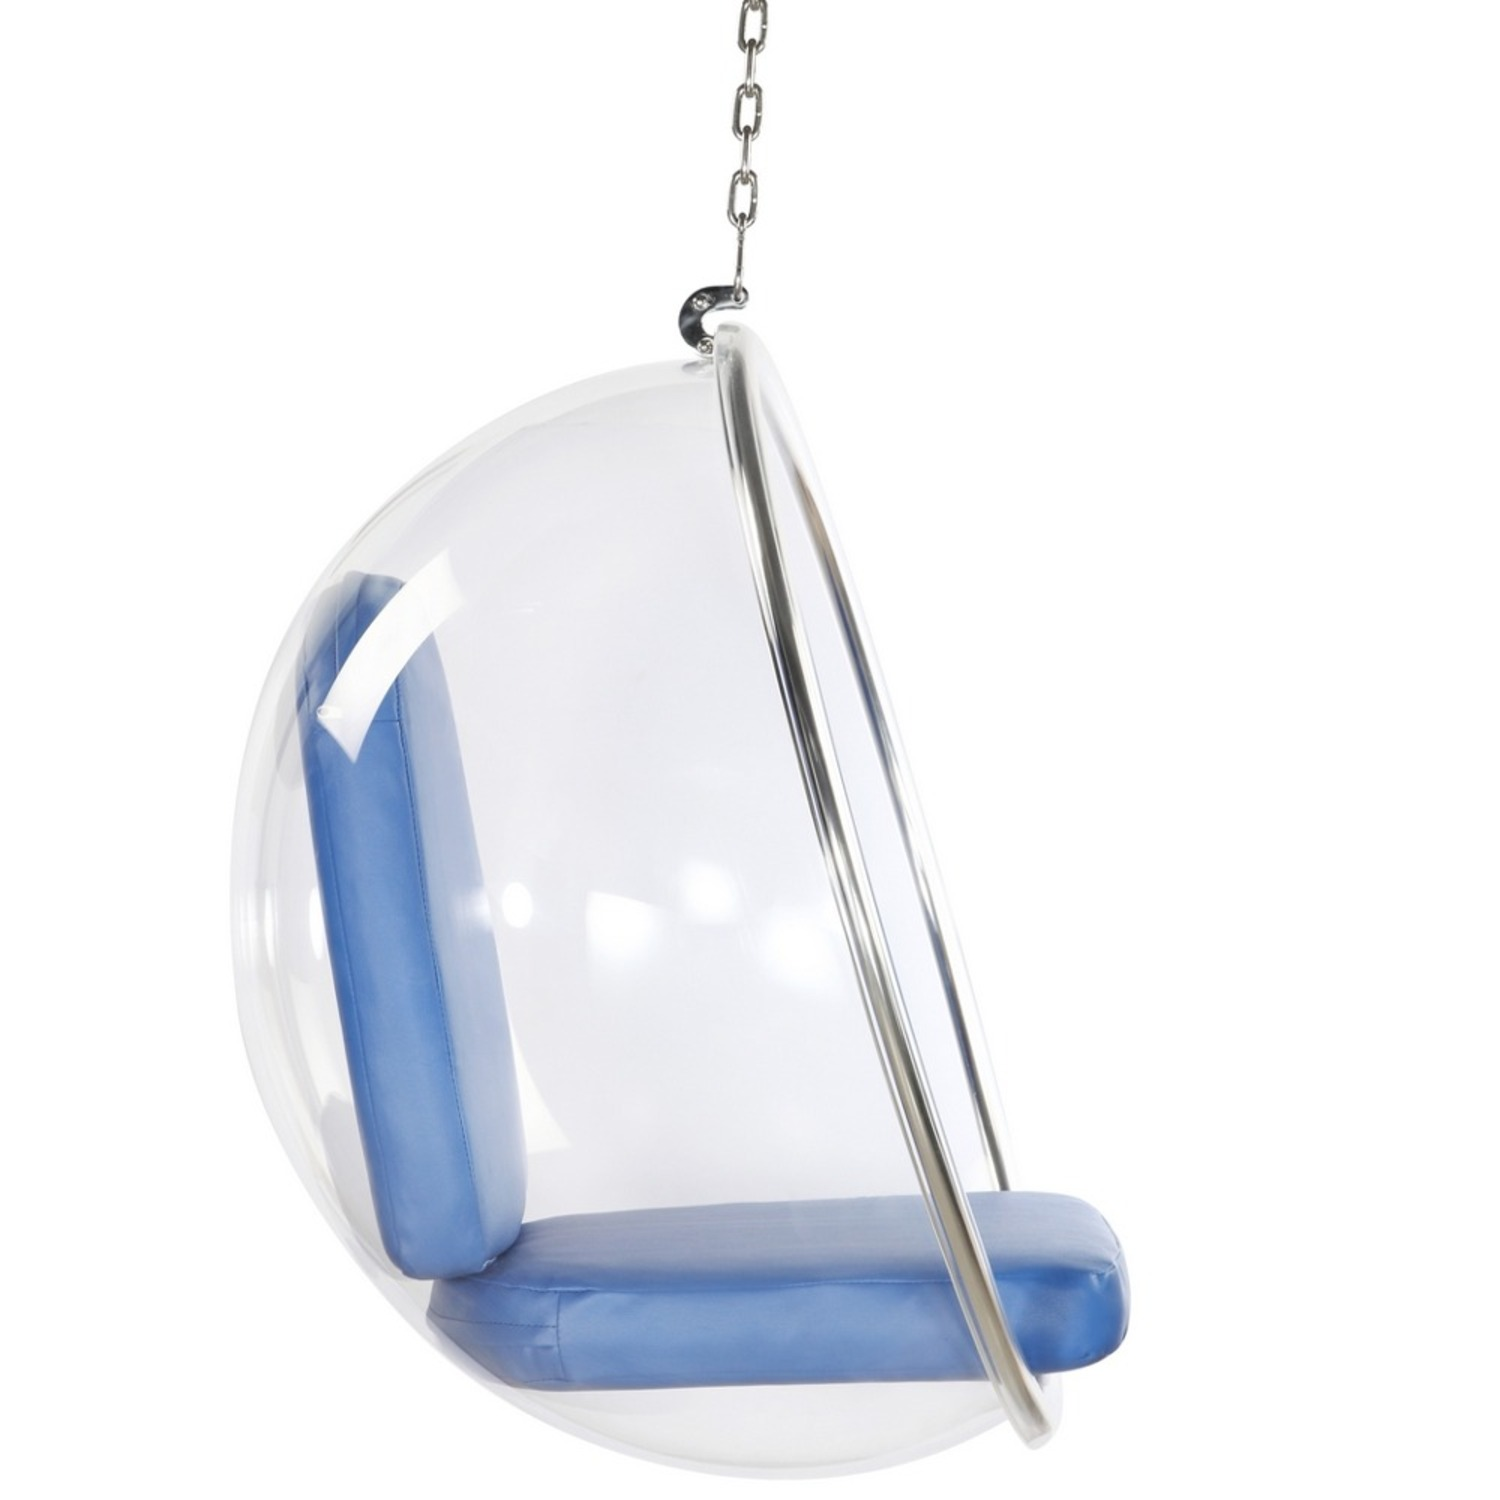 Hanging Chair In Clear Acrylic & Blue PU Leather - image-1